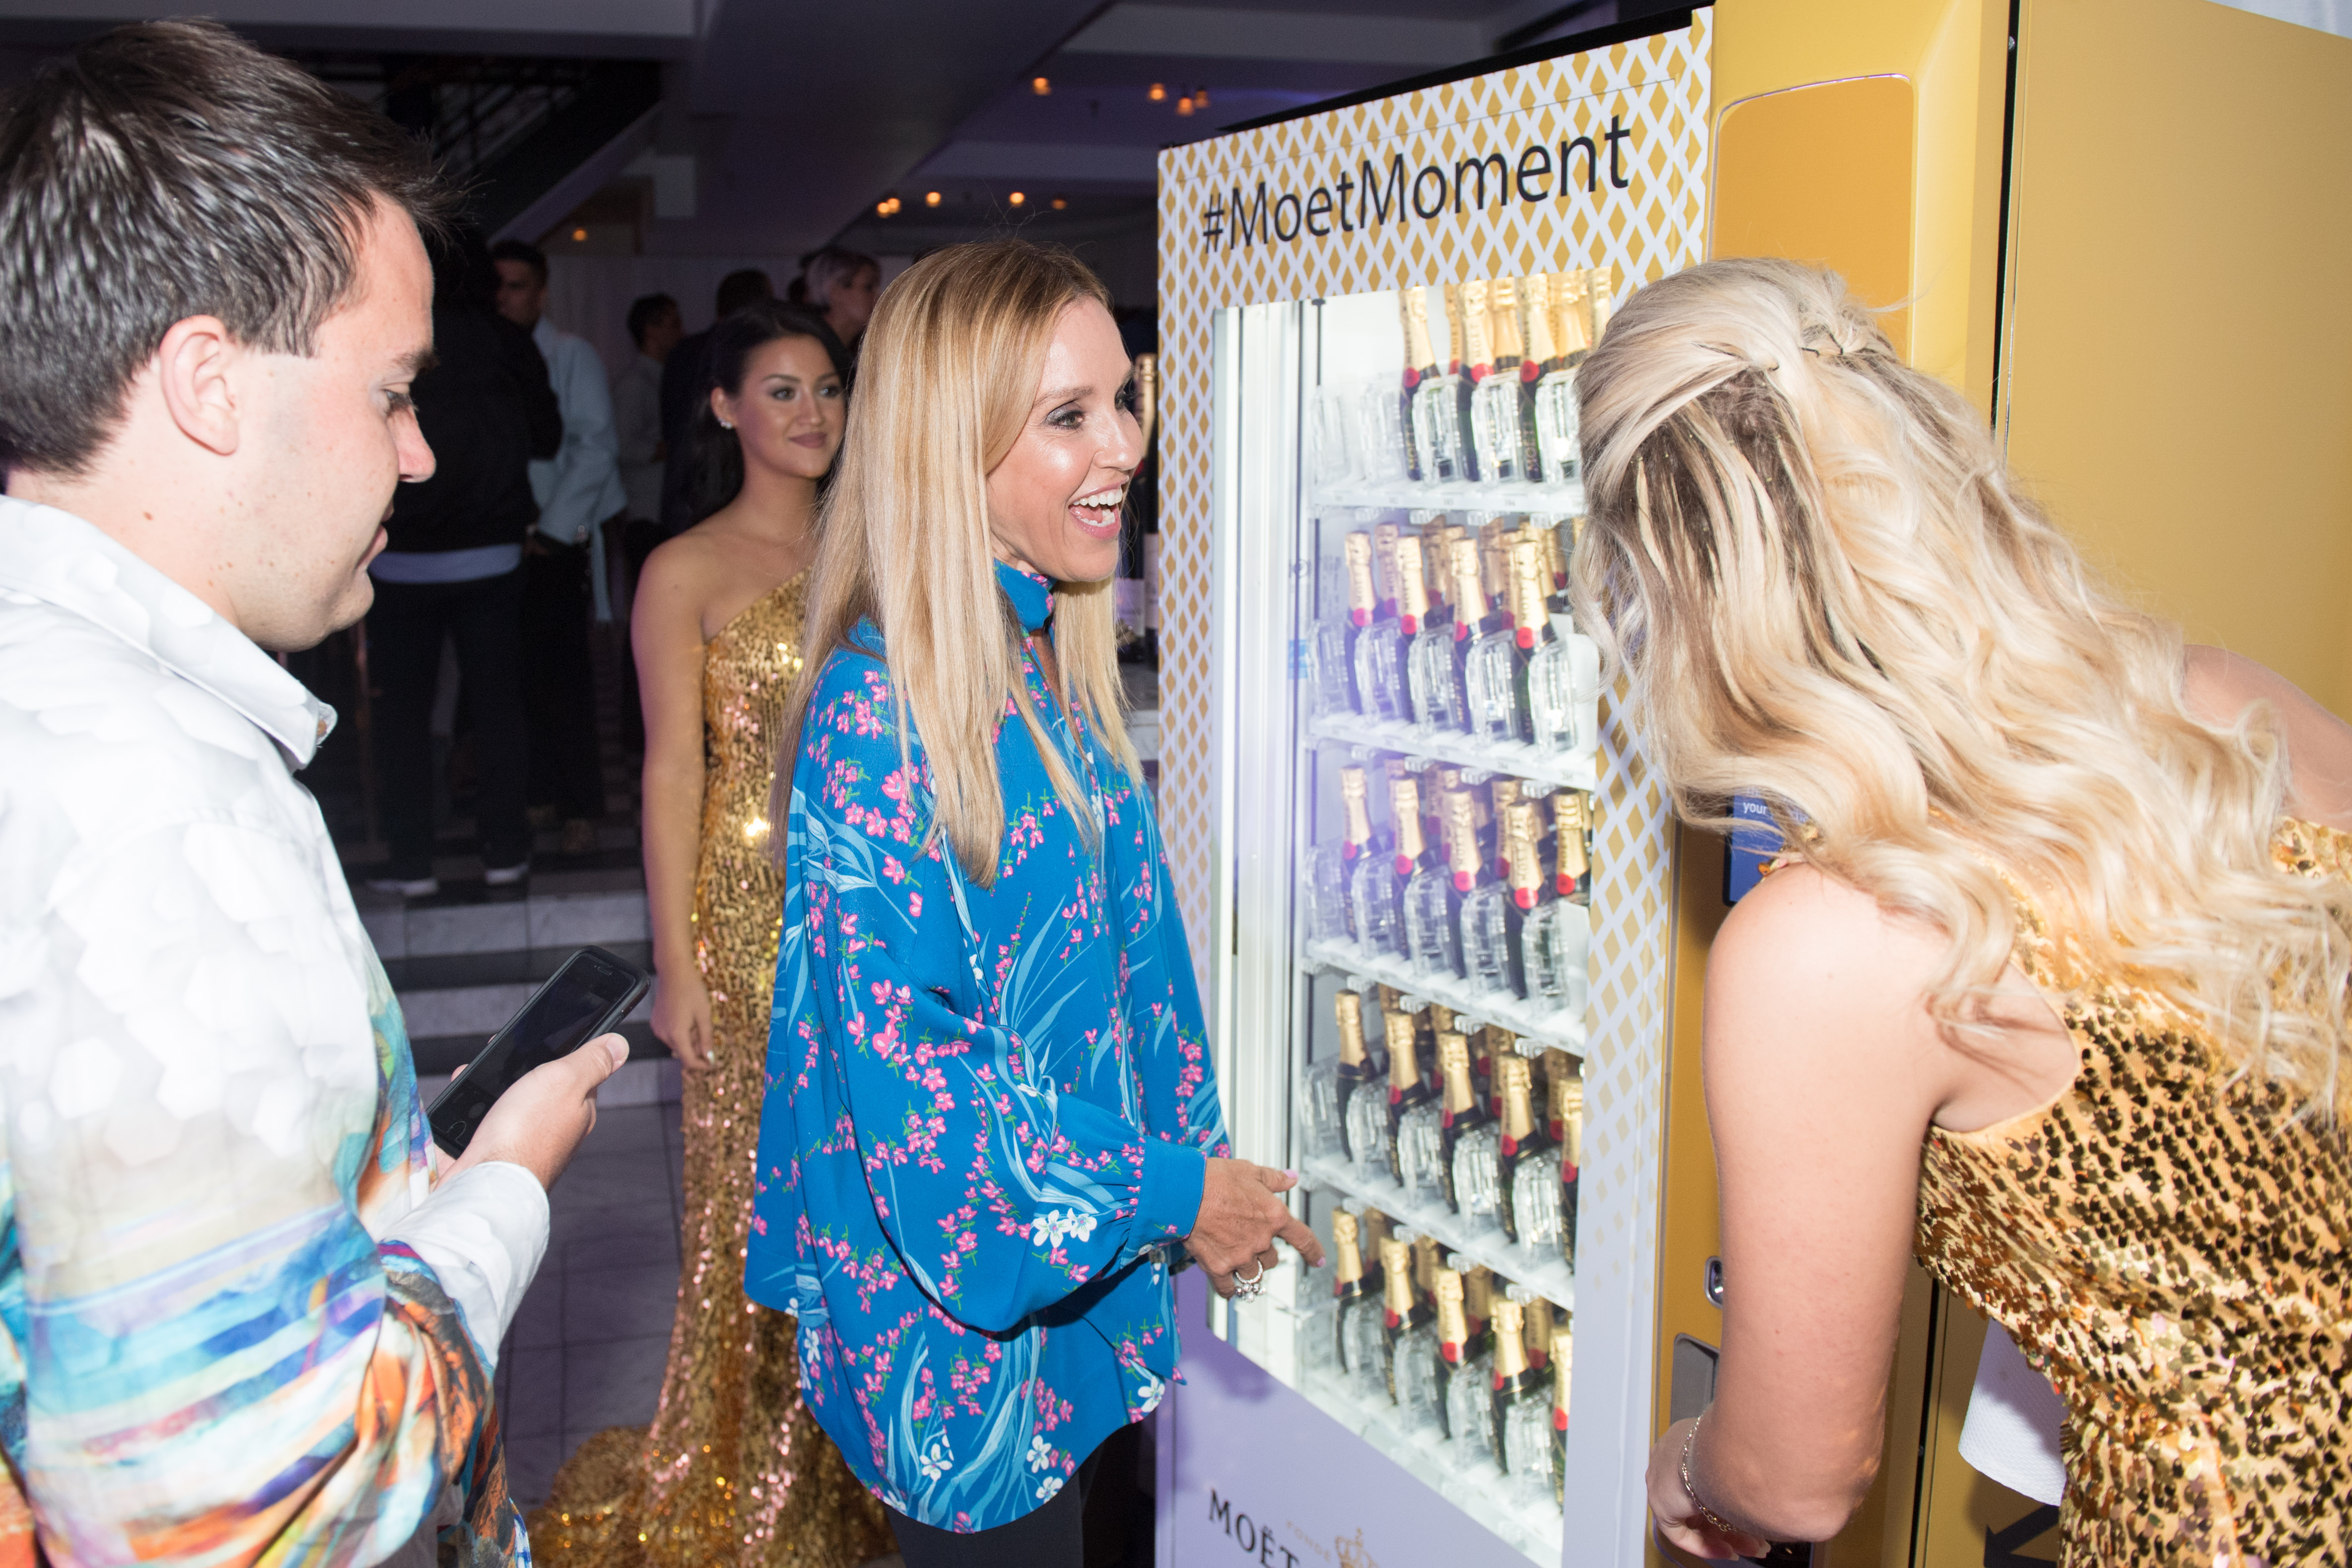 MON MODE / Fashion Blogger / Toronto Blogger | TIFF | MOETMOMENT at Maison Moet | Moet & Chandon